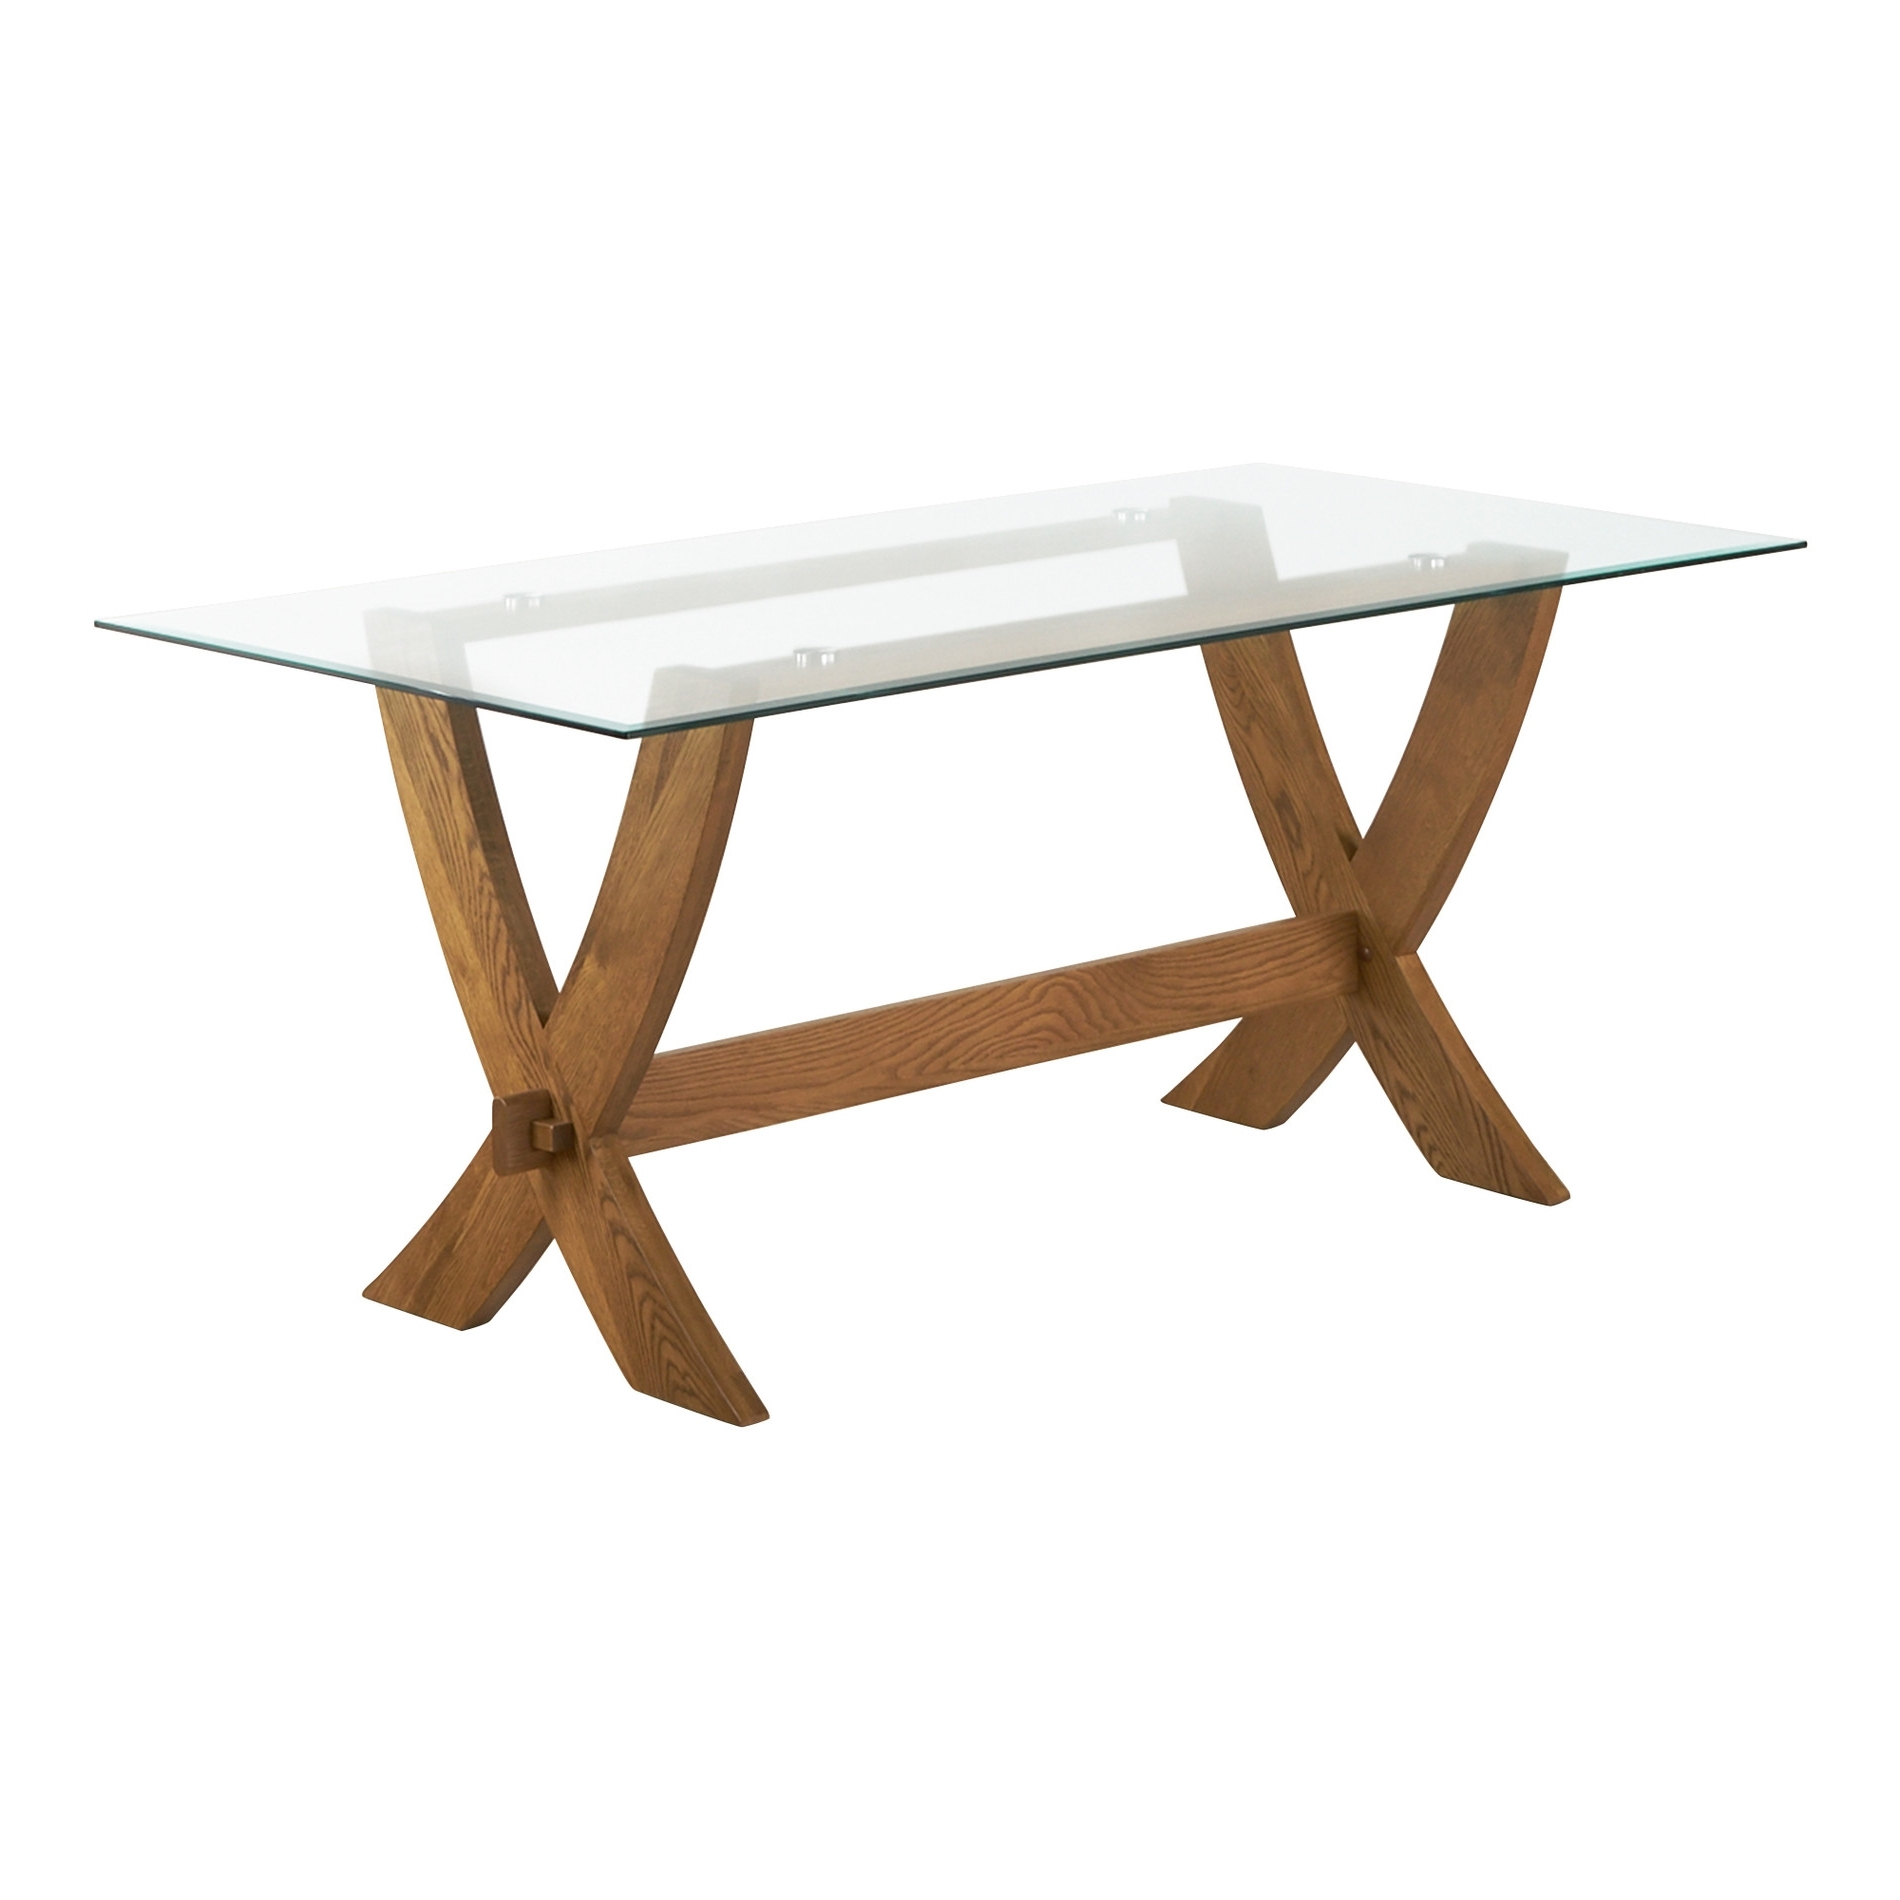 Glass Top Oak Dining Tables with Widely used Reflection Glass Top Dining Table With Solid Oak Crossed Legs